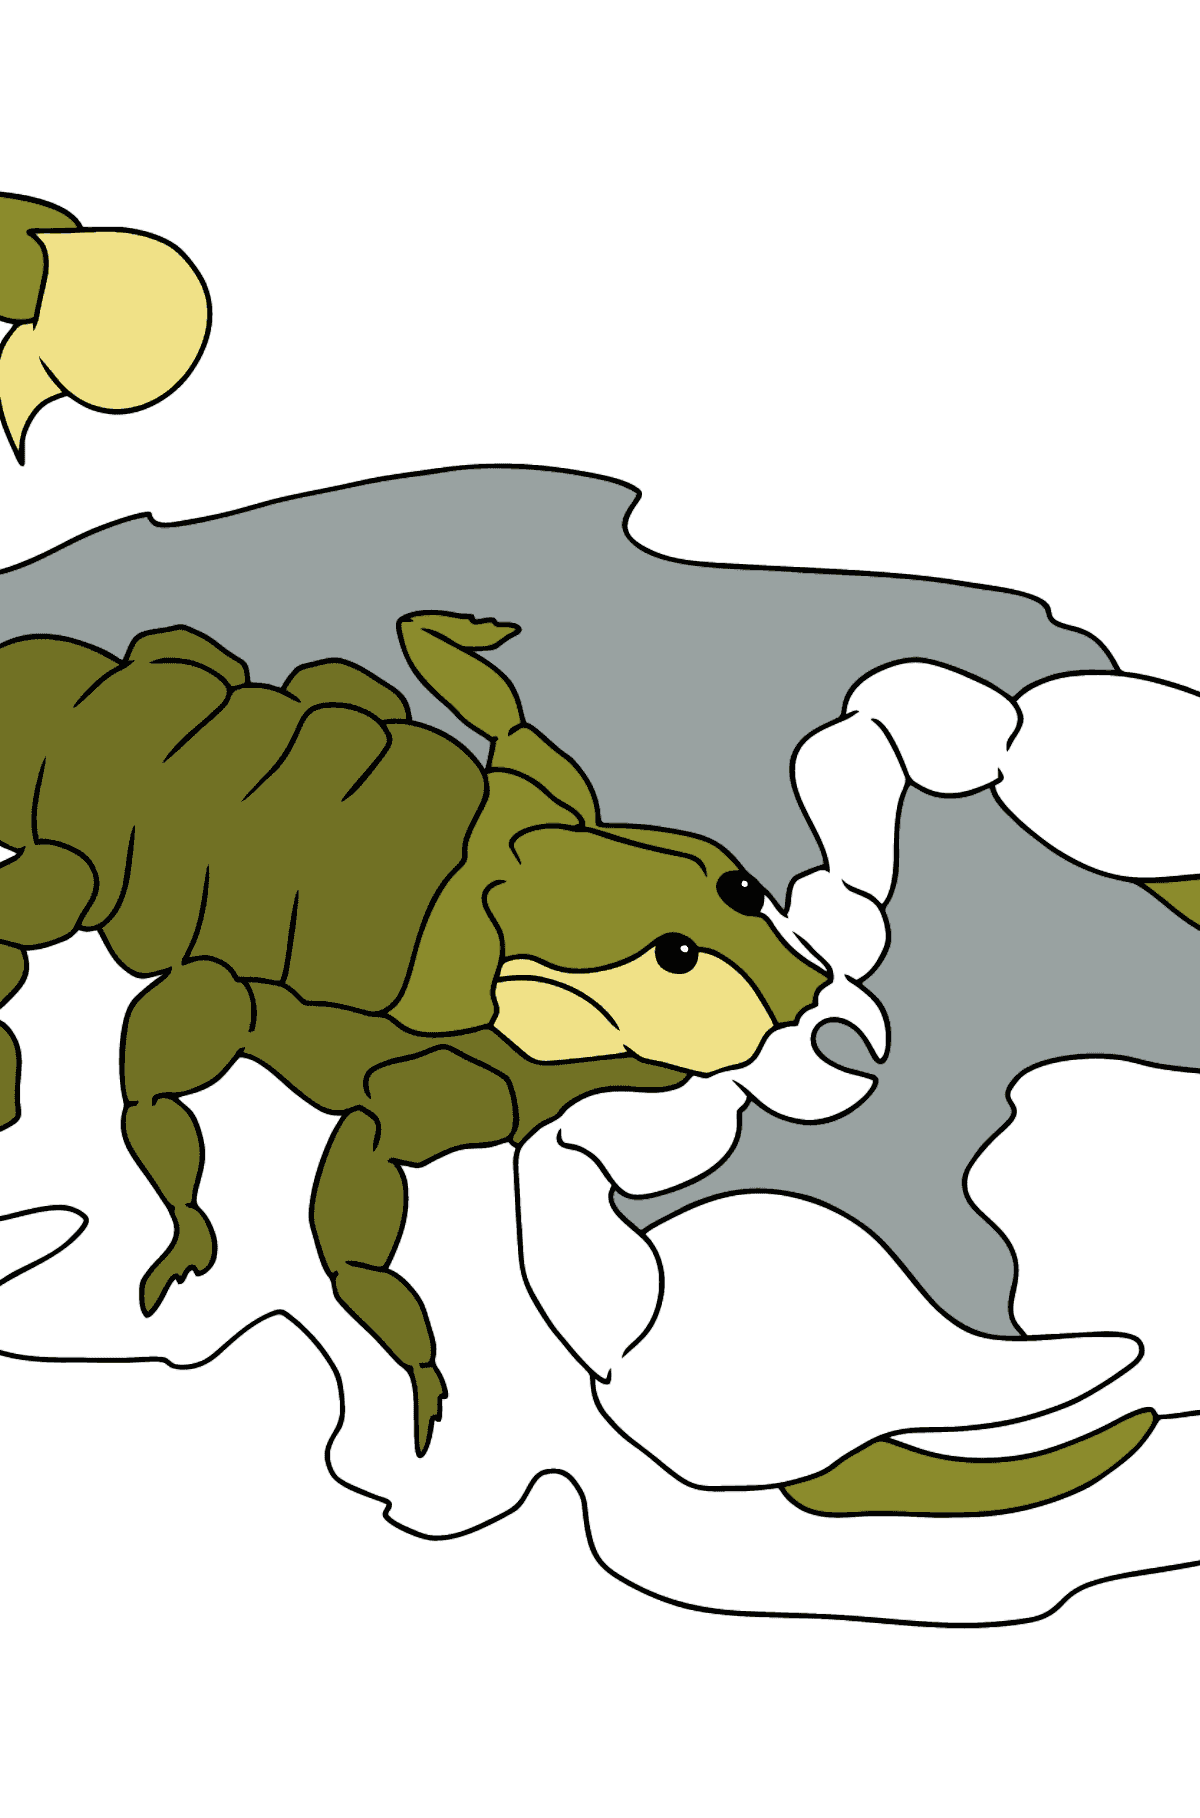 A Poisonous Scorpion Coloring Page - Coloring Pages for Kids